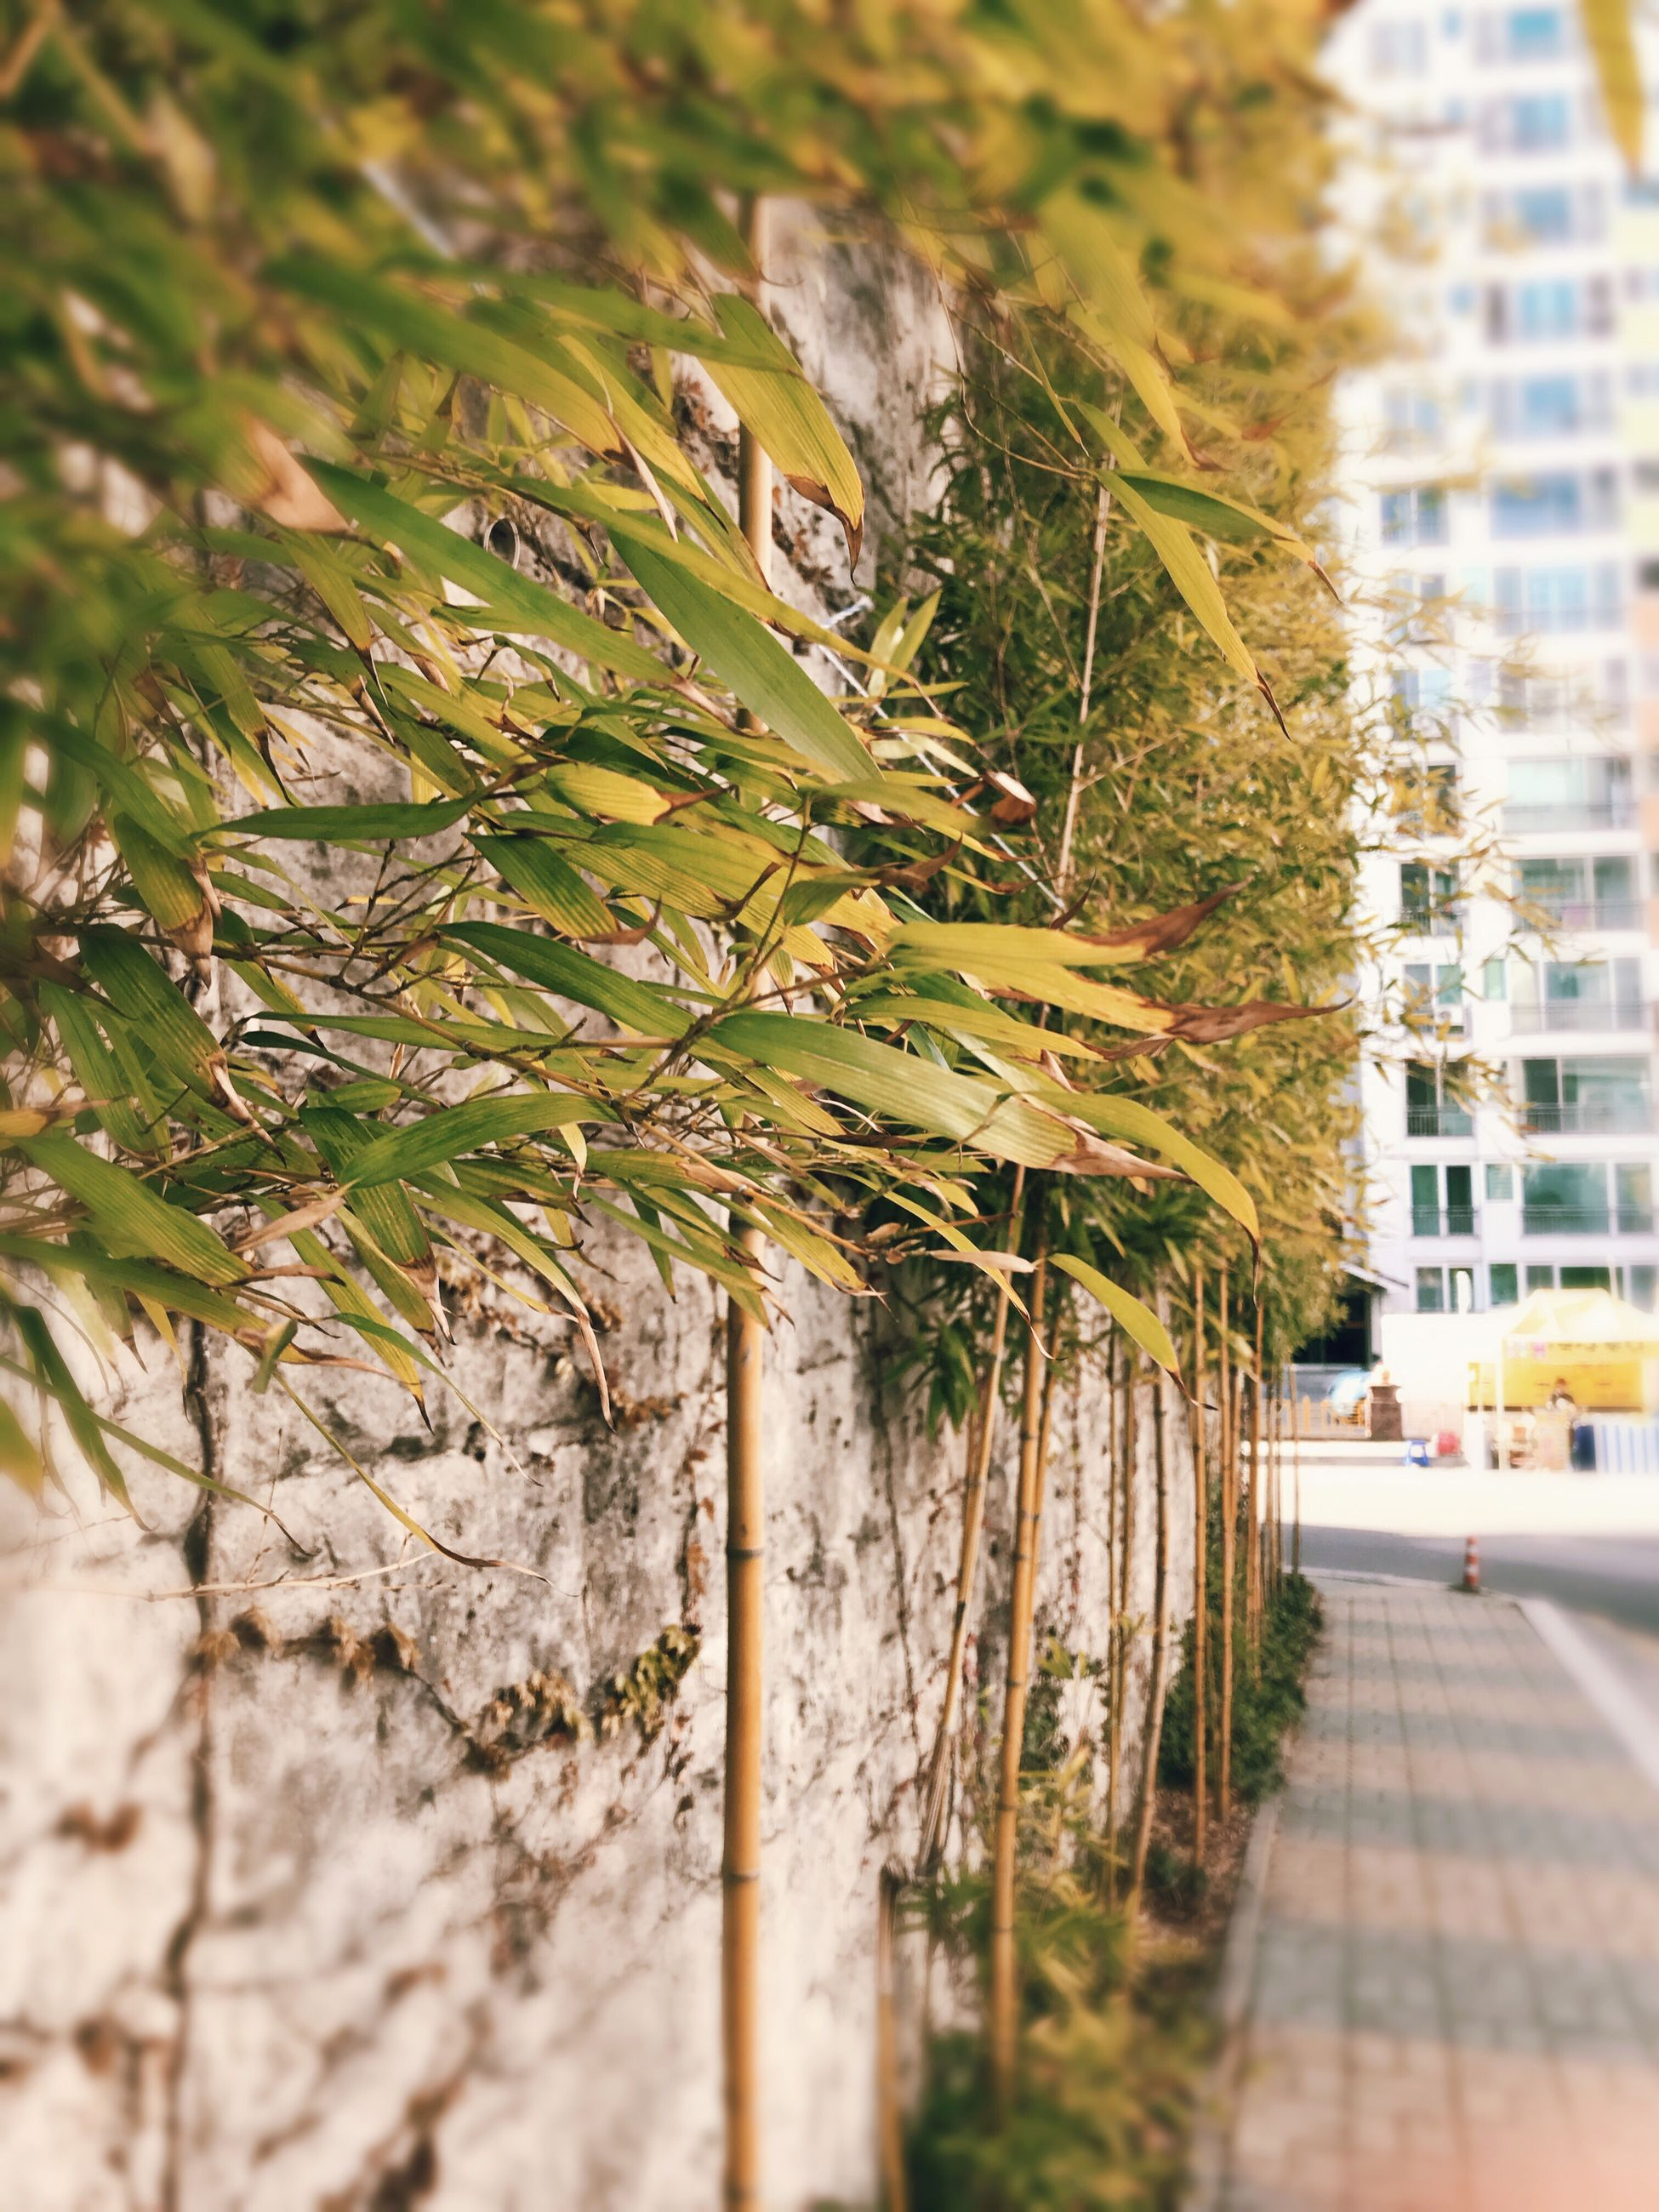 tree, growth, nature, outdoors, no people, plant, day, built structure, building exterior, beauty in nature, close-up, architecture, grass